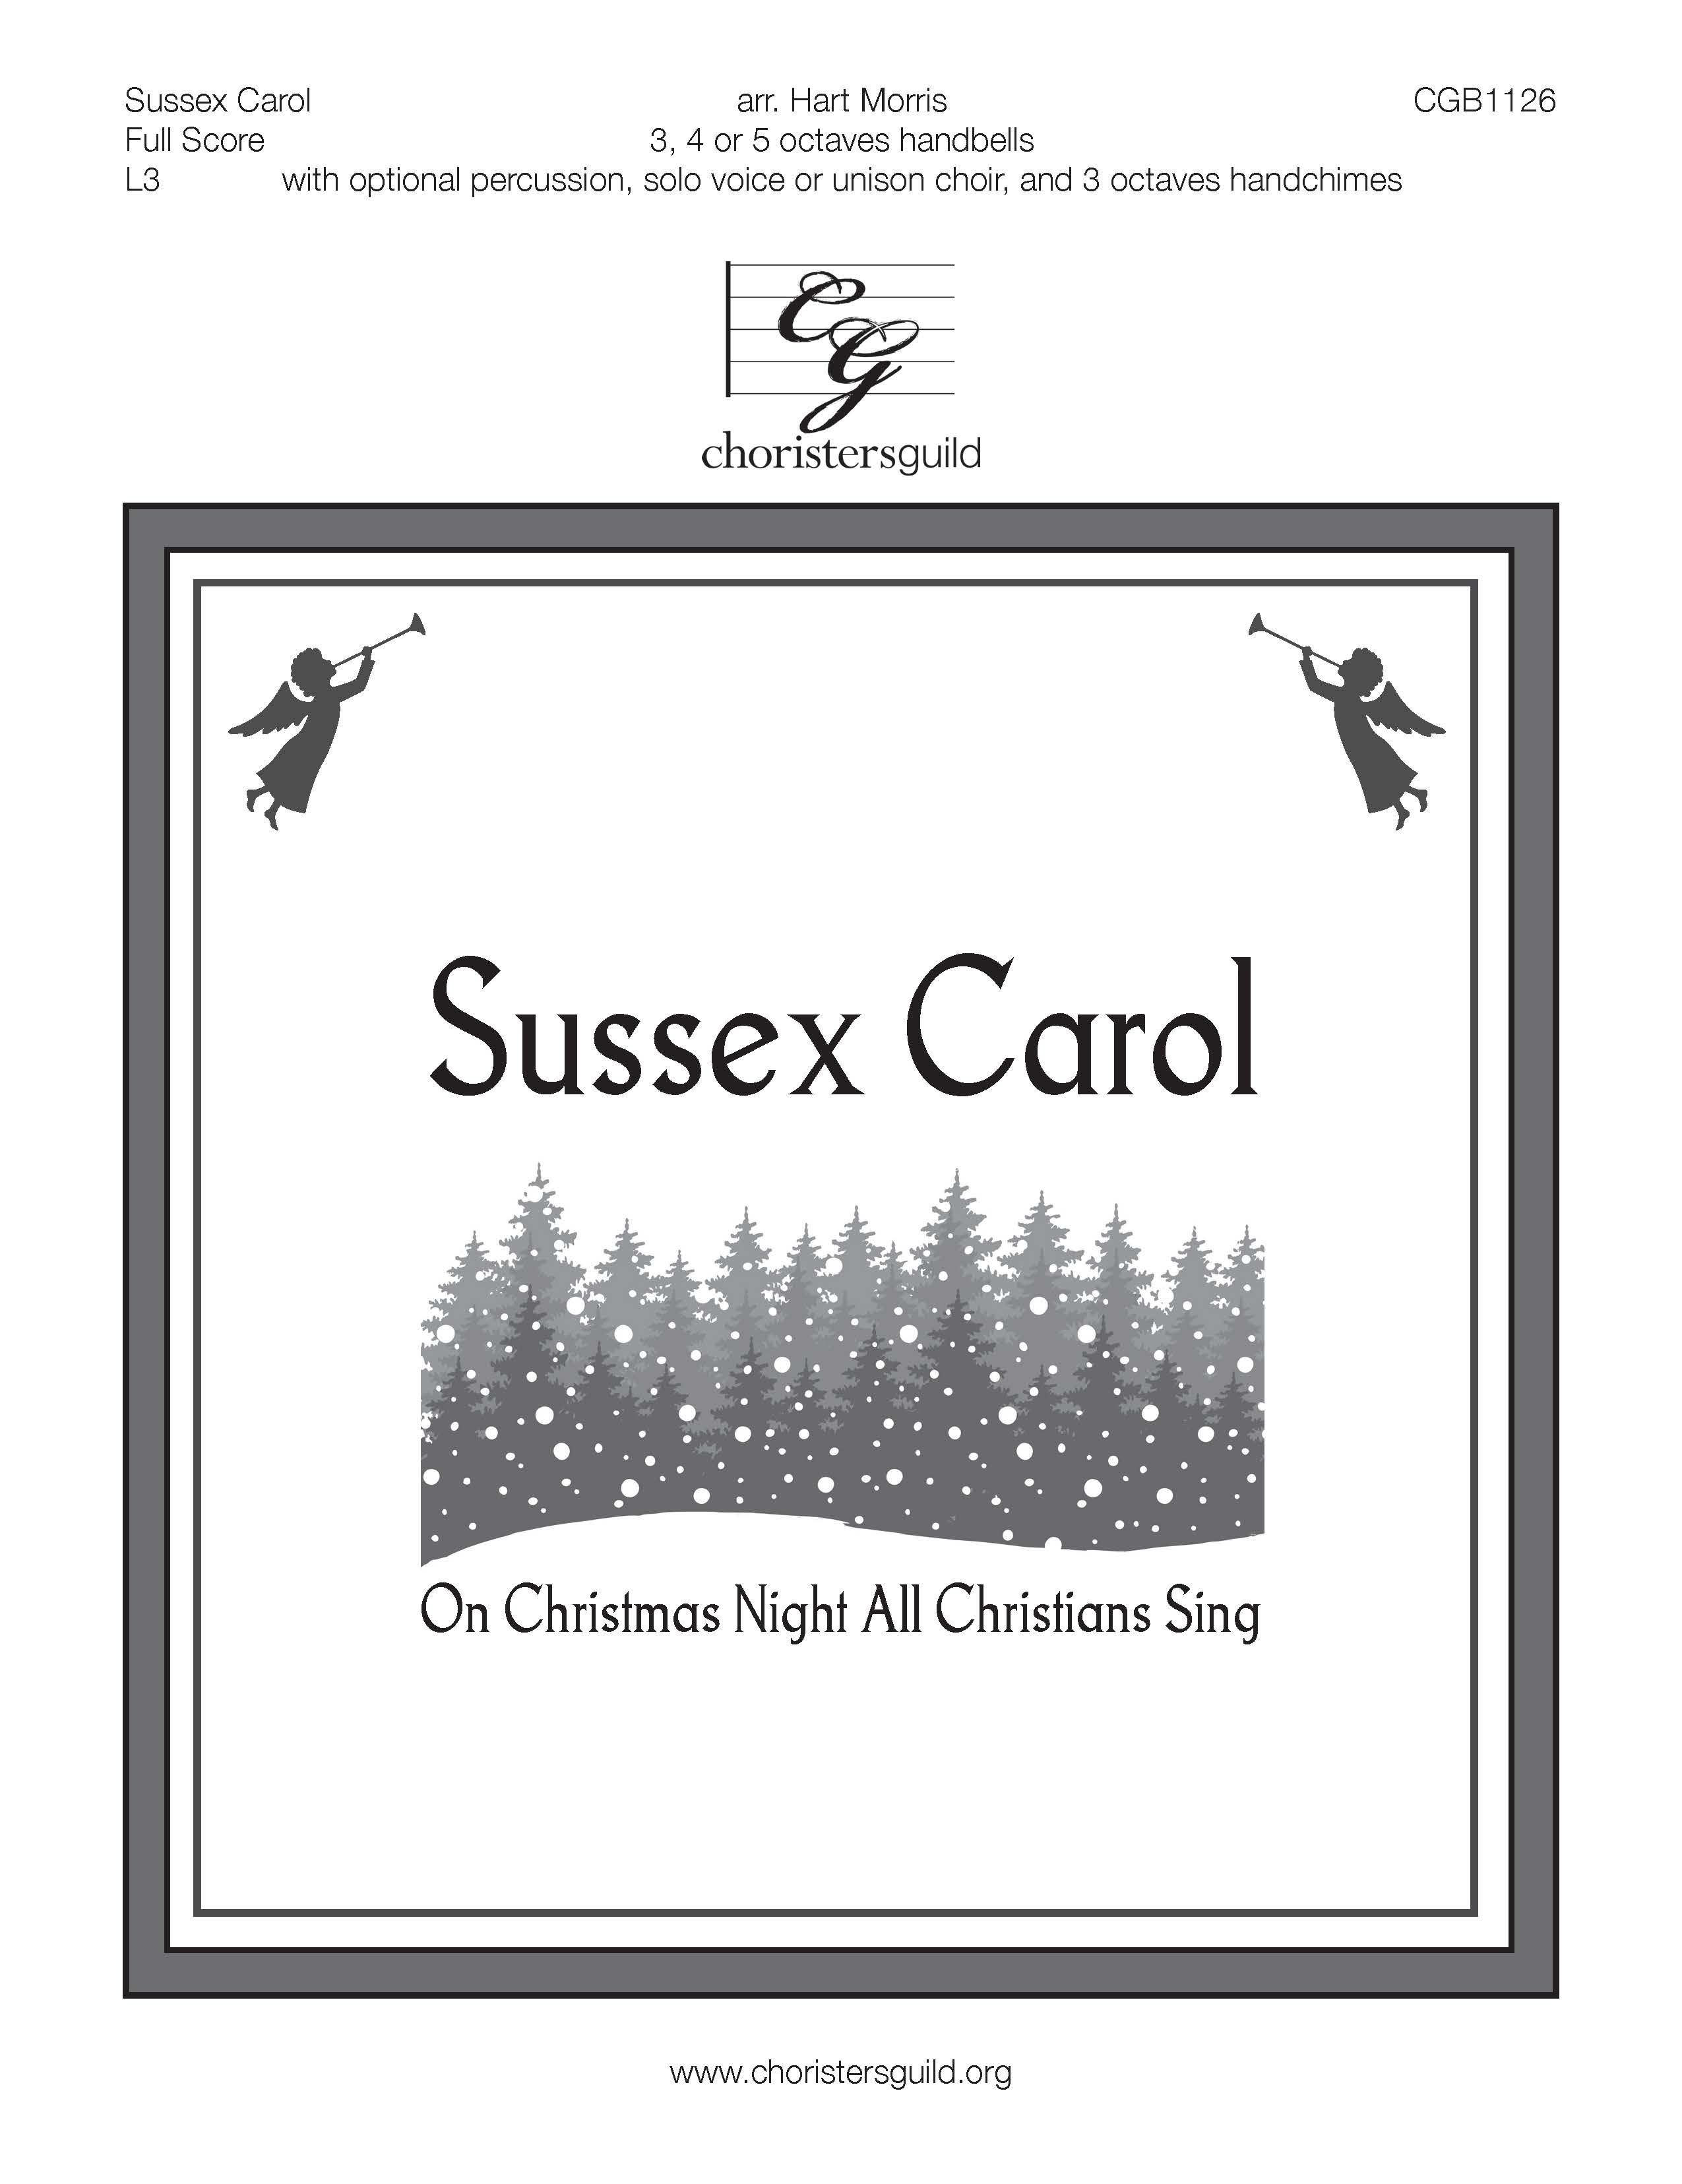 Sussex Carol - Full Score (includes percussion parts)